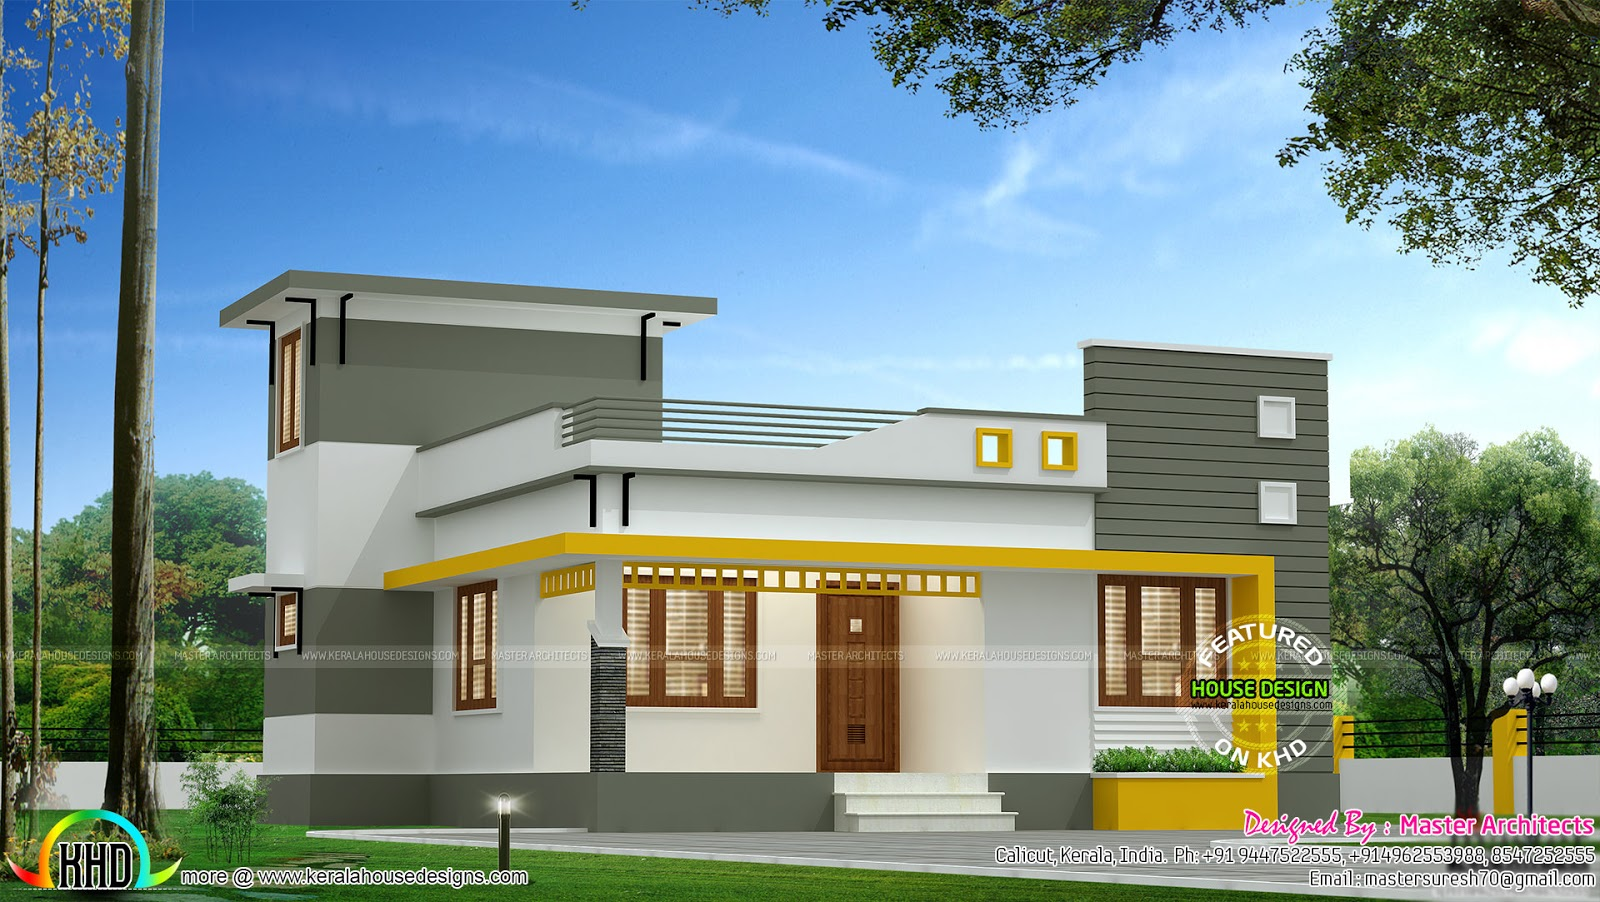 3 bedroom single floor modern architecture home kerala for Modern 3 bedroom house design